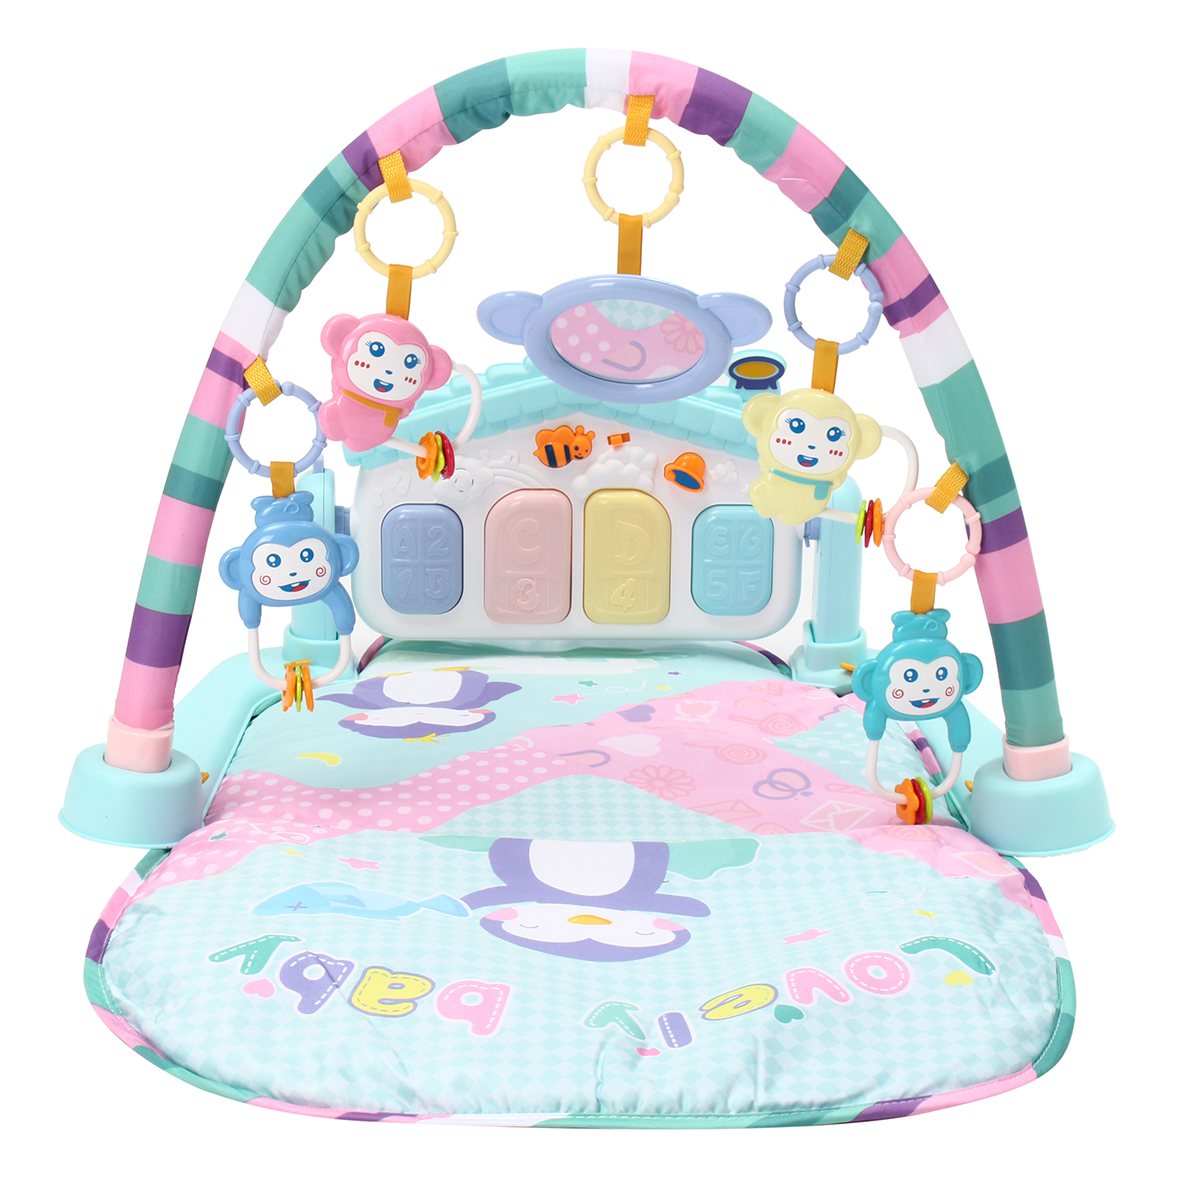 Baby Toddler Infant 3 in 1 Musical Piano Play Mat Activity Gym